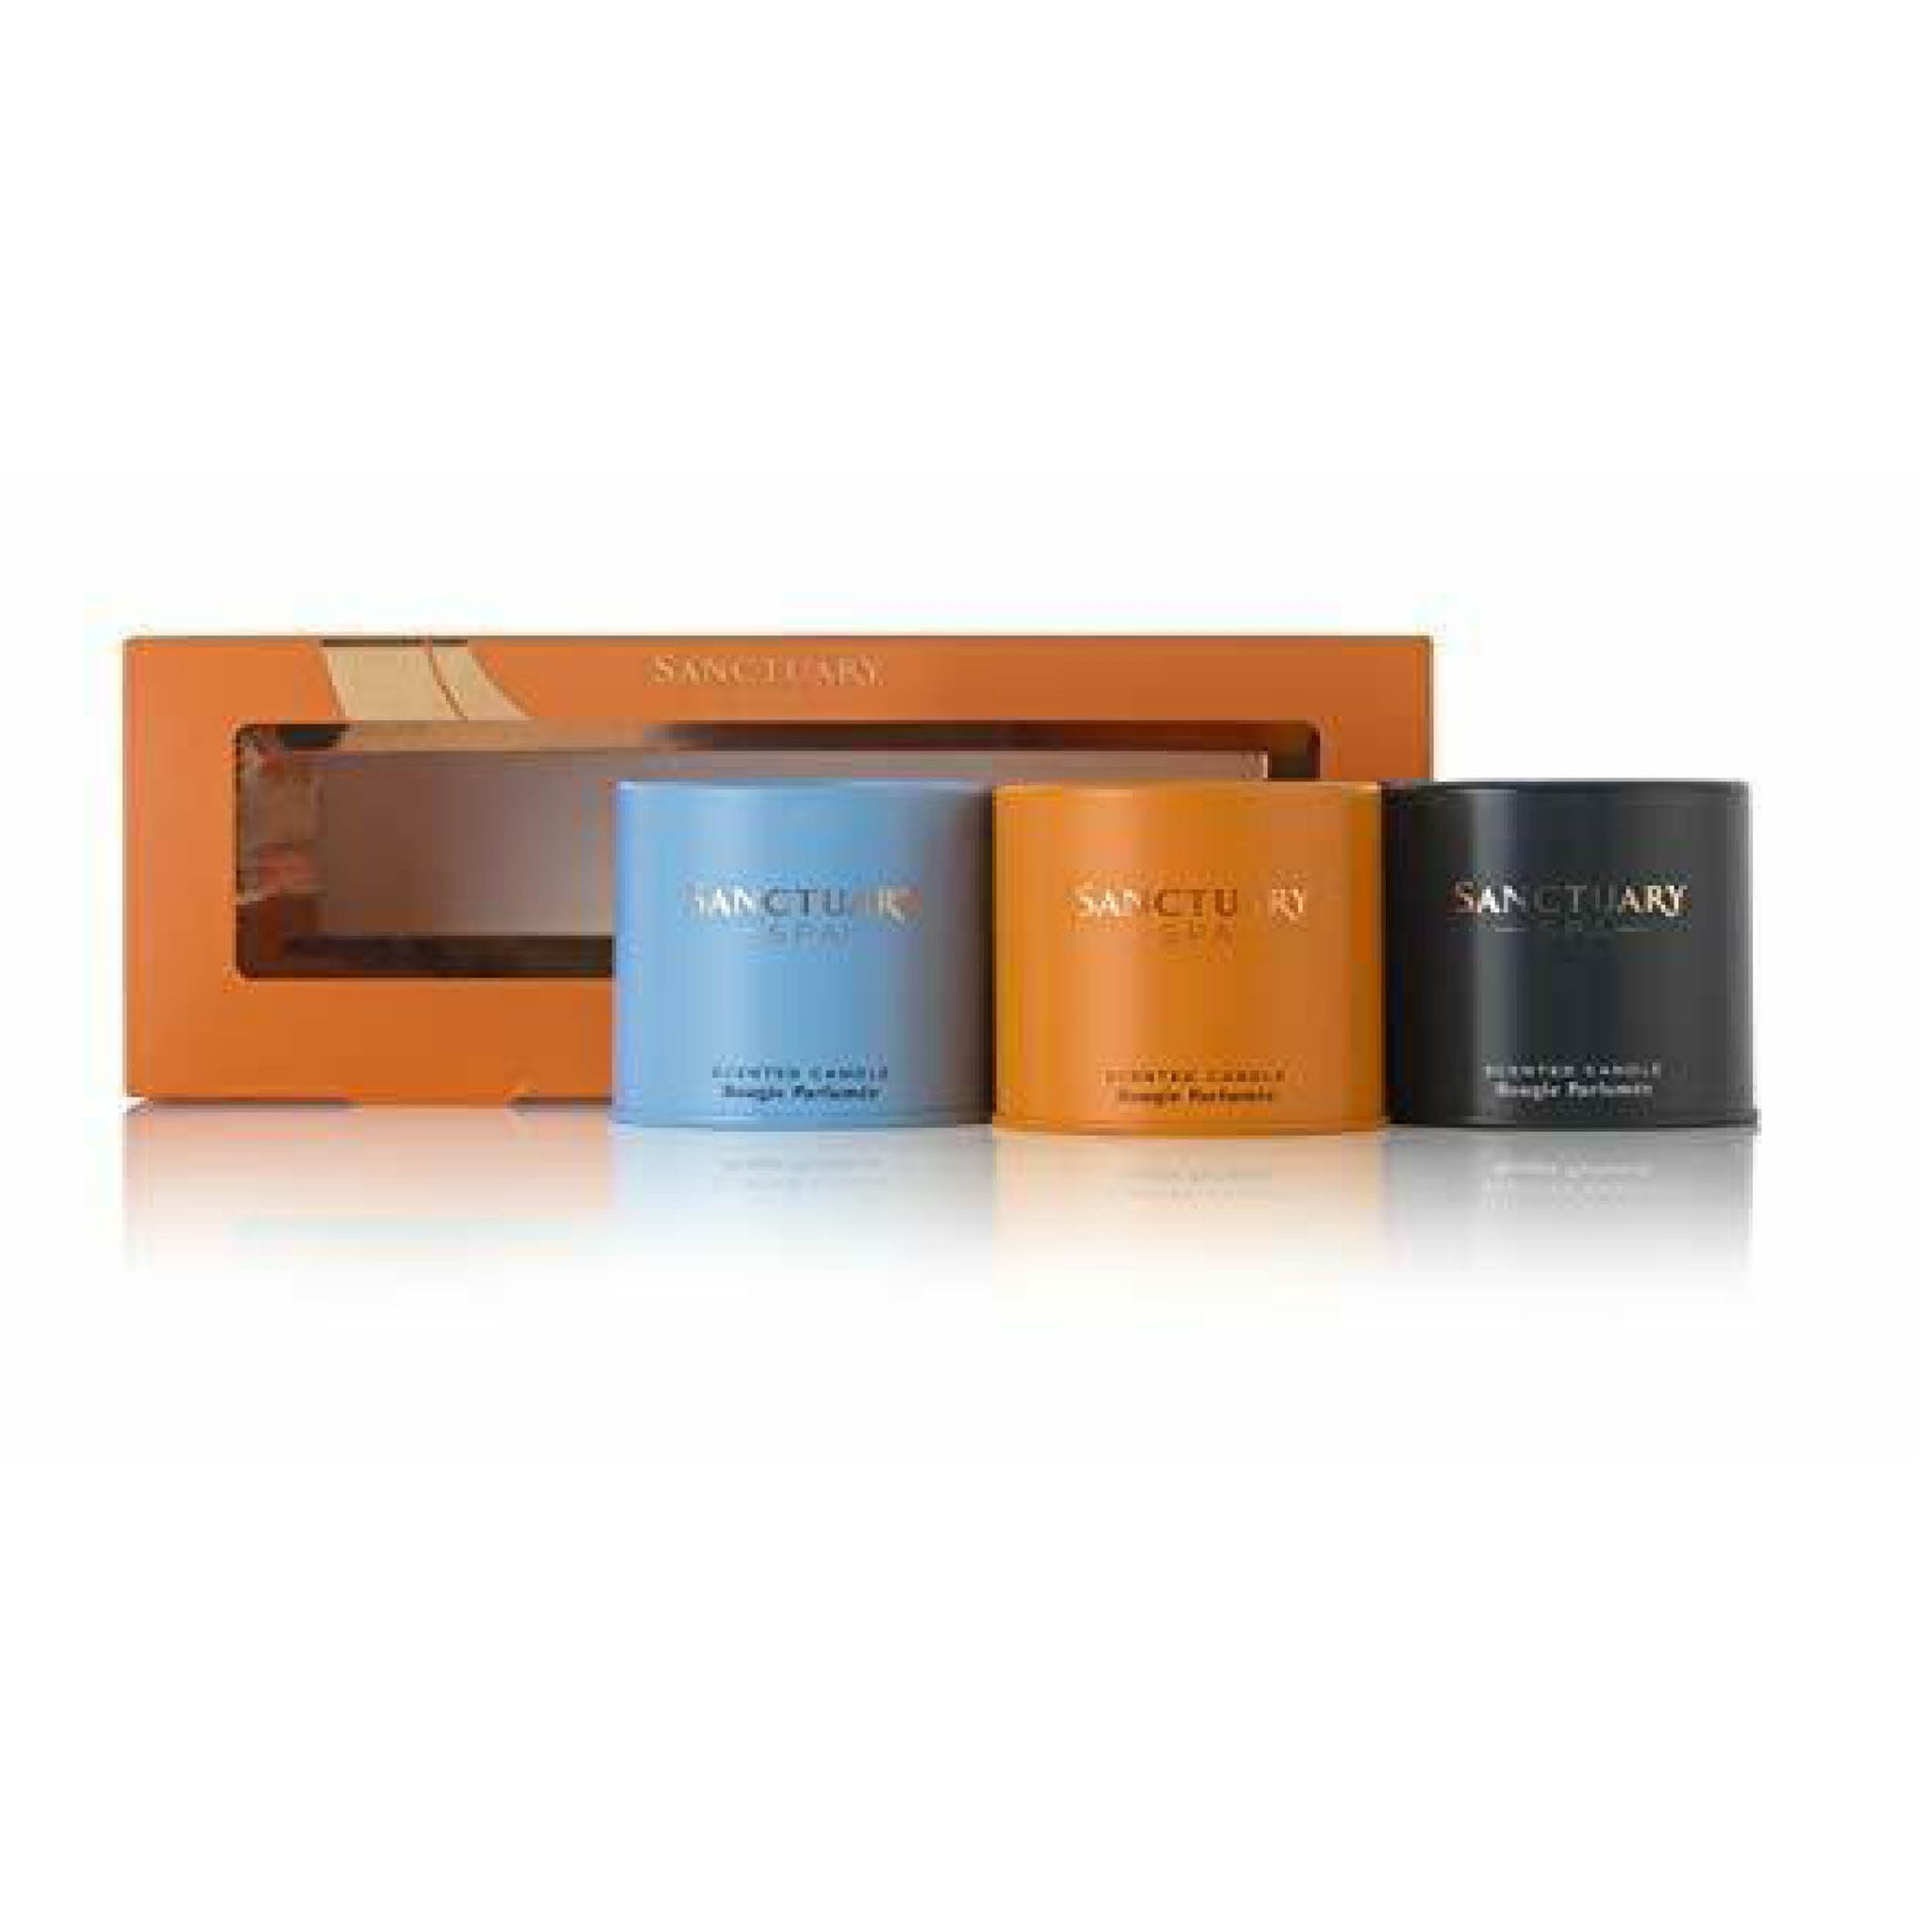 Sanctuary Candle Trio Gift